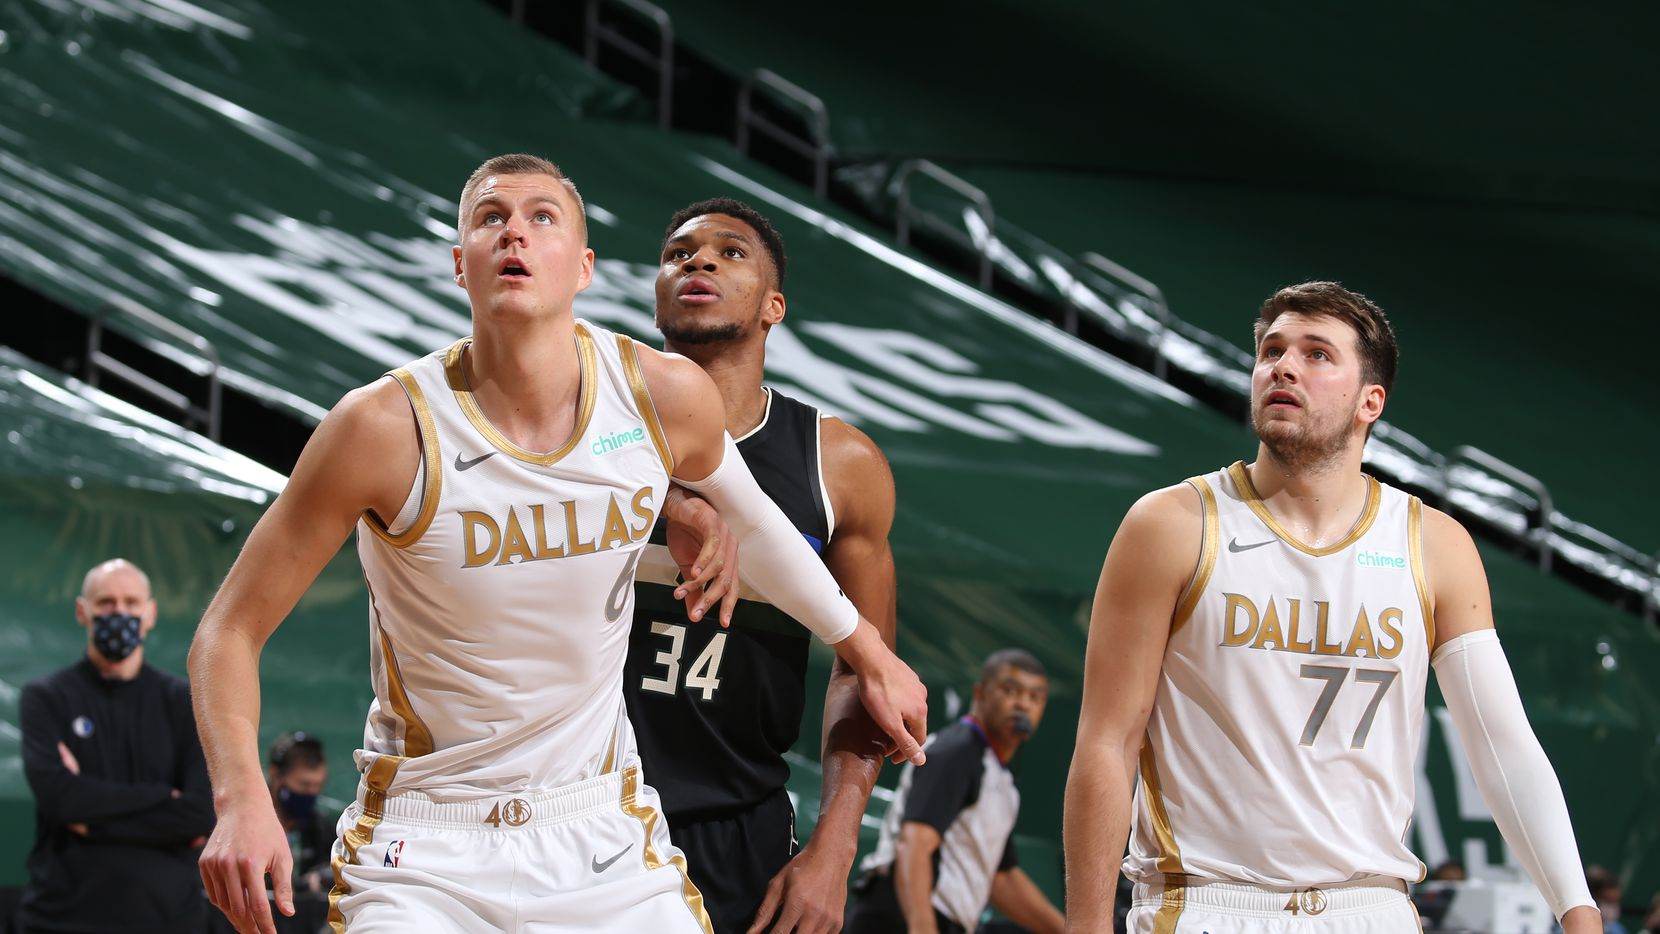 Mavericks forward Kristaps Porzingis (6), Bucks forward Giannis Antetokounmpo (34) and Mavericks guard Luka Doncic (77) are pictured during a game on Jan. 15, 2021, at Fiserv Forum in Milwaukee. (Photo by Gary Dineen/NBAE via Getty Images)